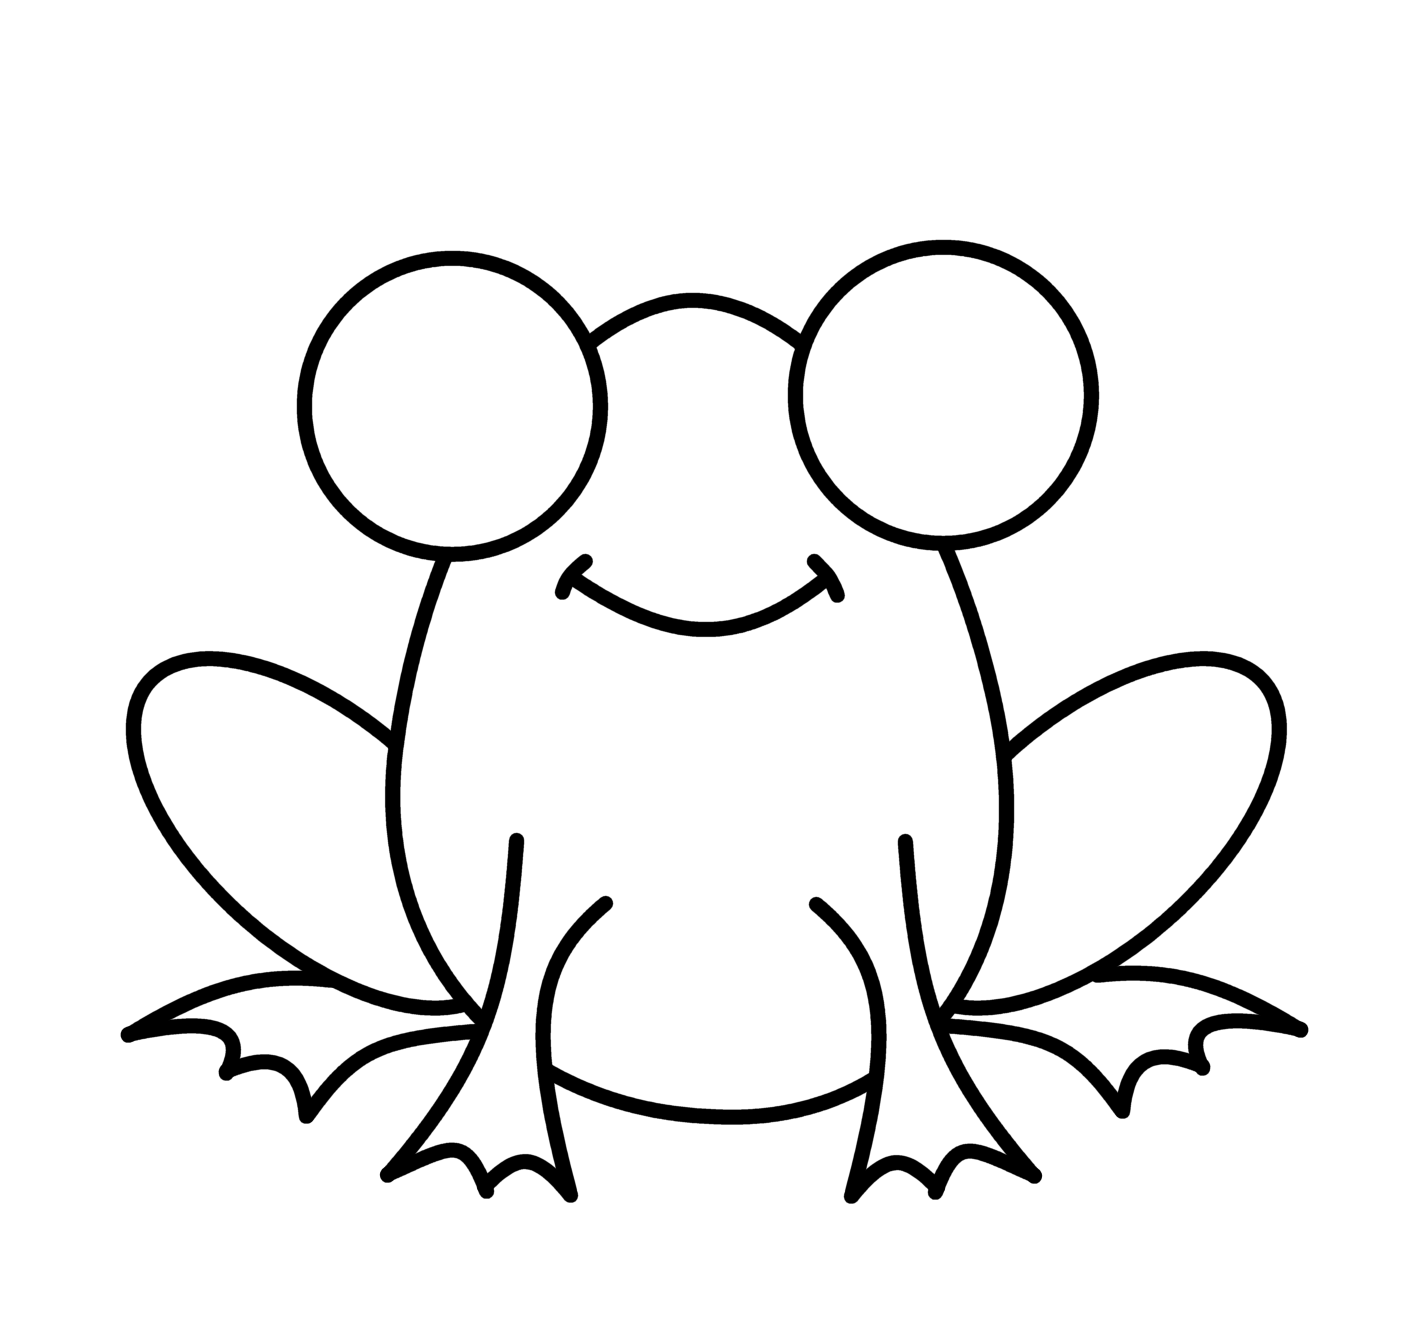 How To Draw Cartoons Frog 1st Grade Art Drawings For